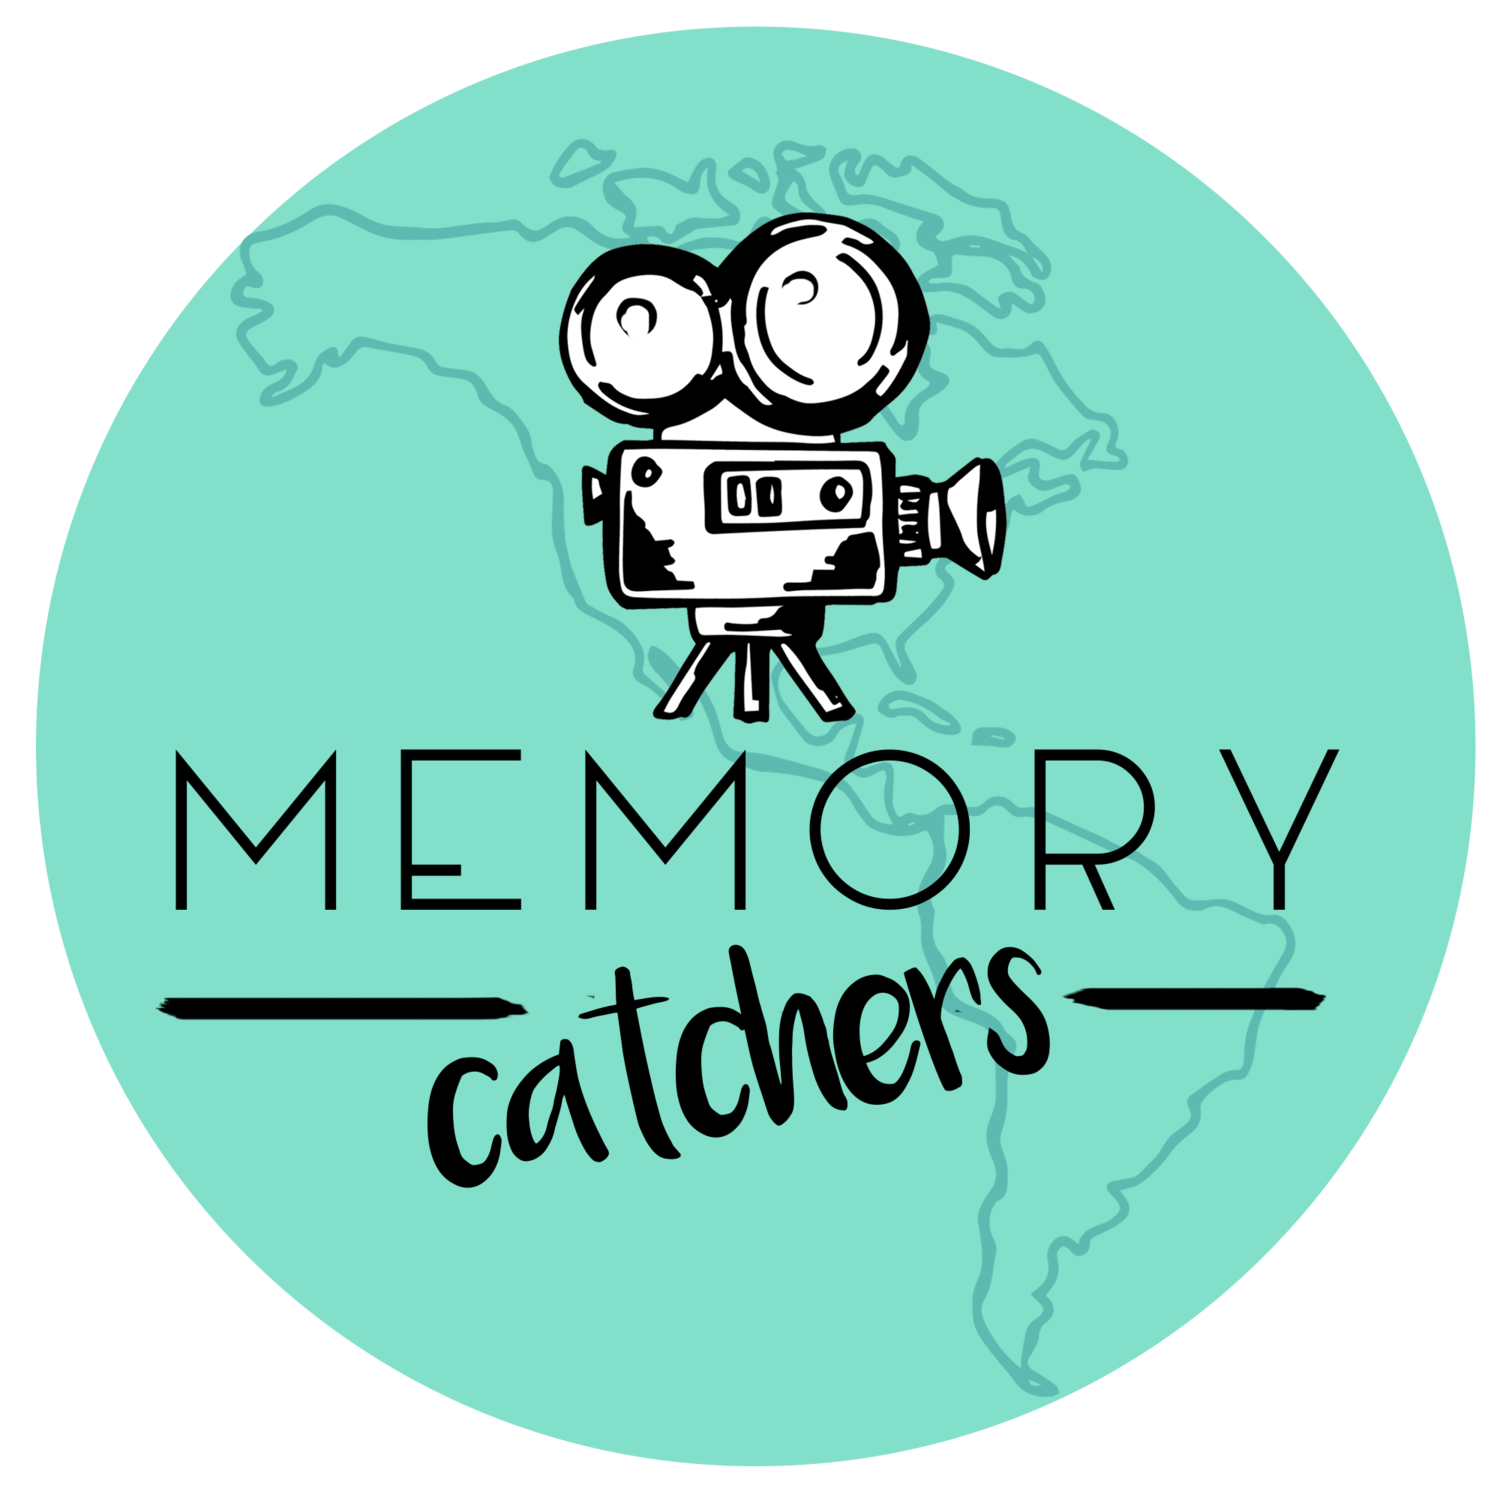 Memory Catchers